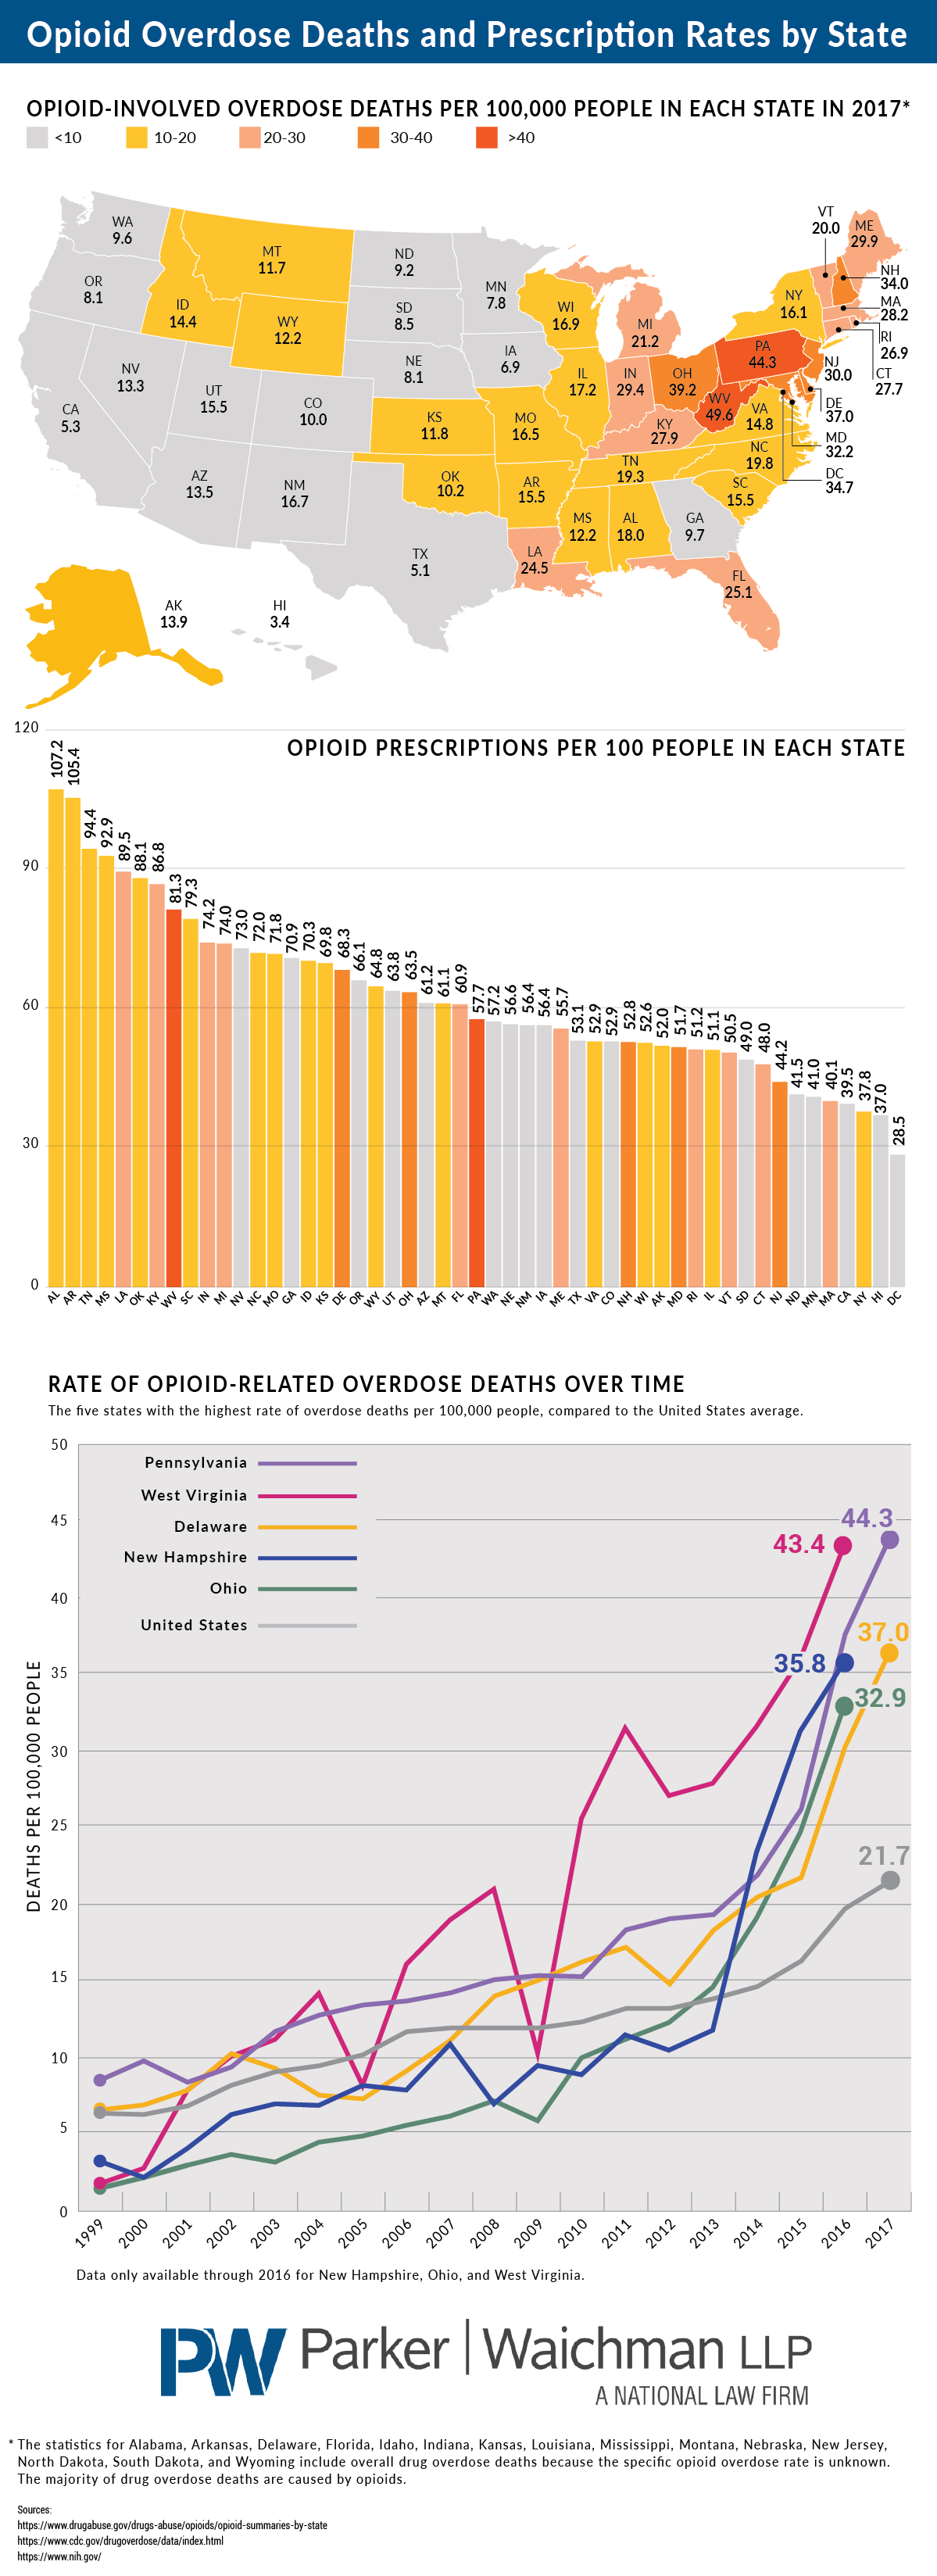 Opioid overdose deaths prescription rates by state 4